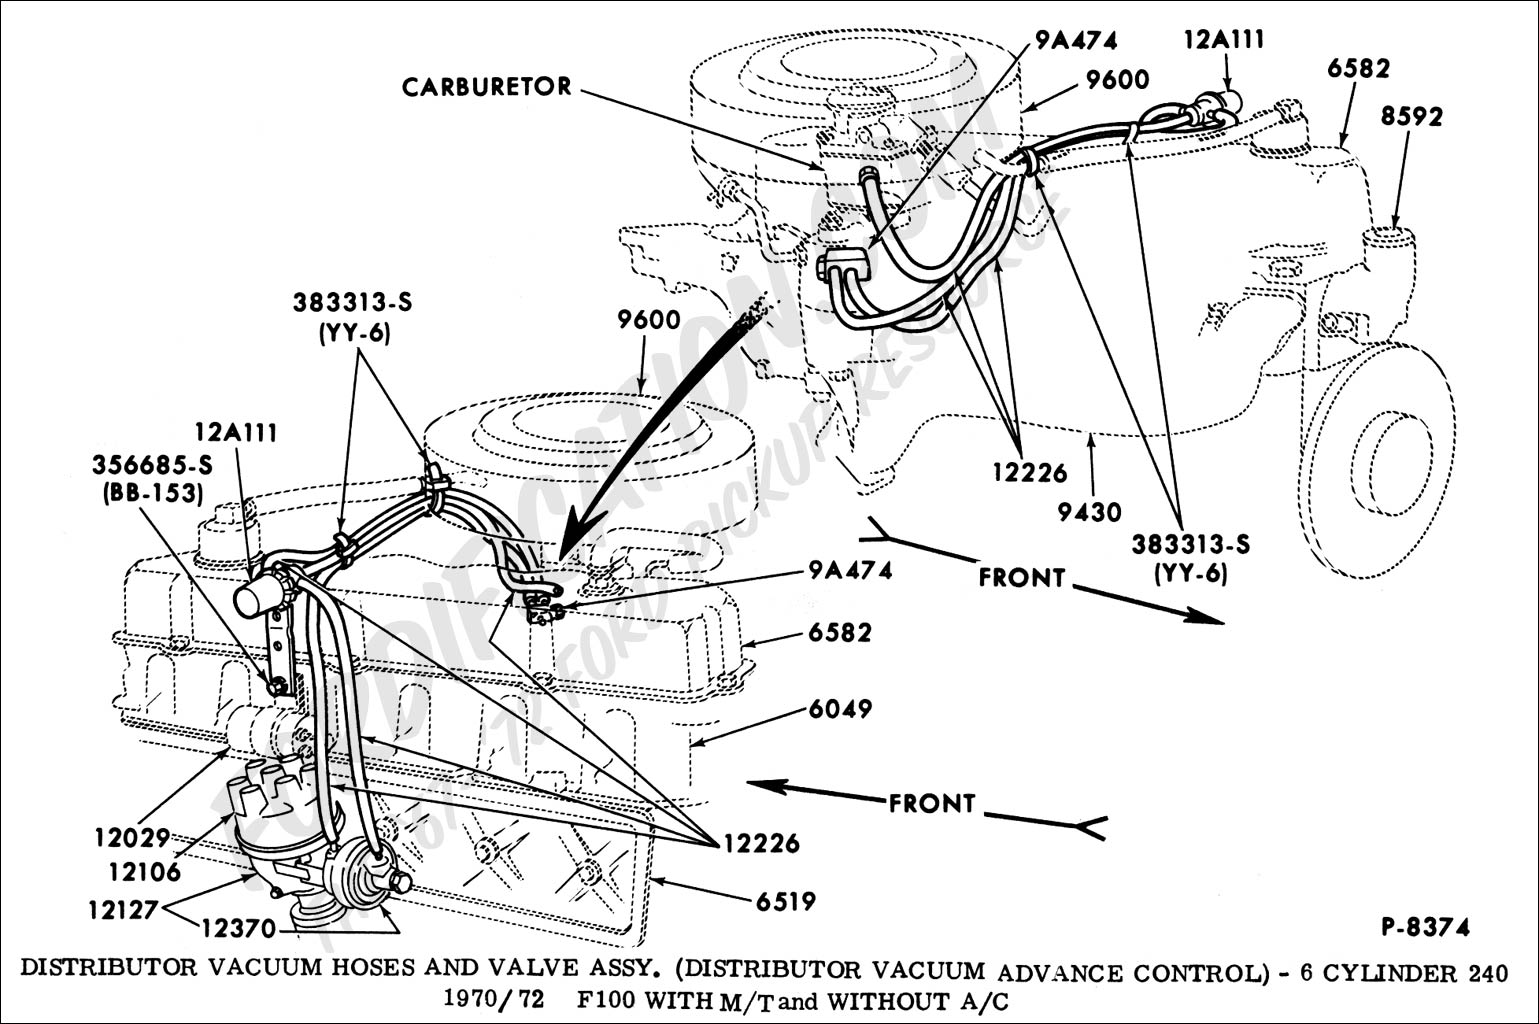 Wiring Diagram 1972 Ford F100 1955 further 2222159 1972 Coupe Base Engine Fuse Panel Diagram further 1975 Ford F250 Wiring Diagram further 1964 Chevelle Wiring Diagram additionally 781081 Charging System Upgrade Need Some Help. on 1971 ford f100 ignition wiring diagram